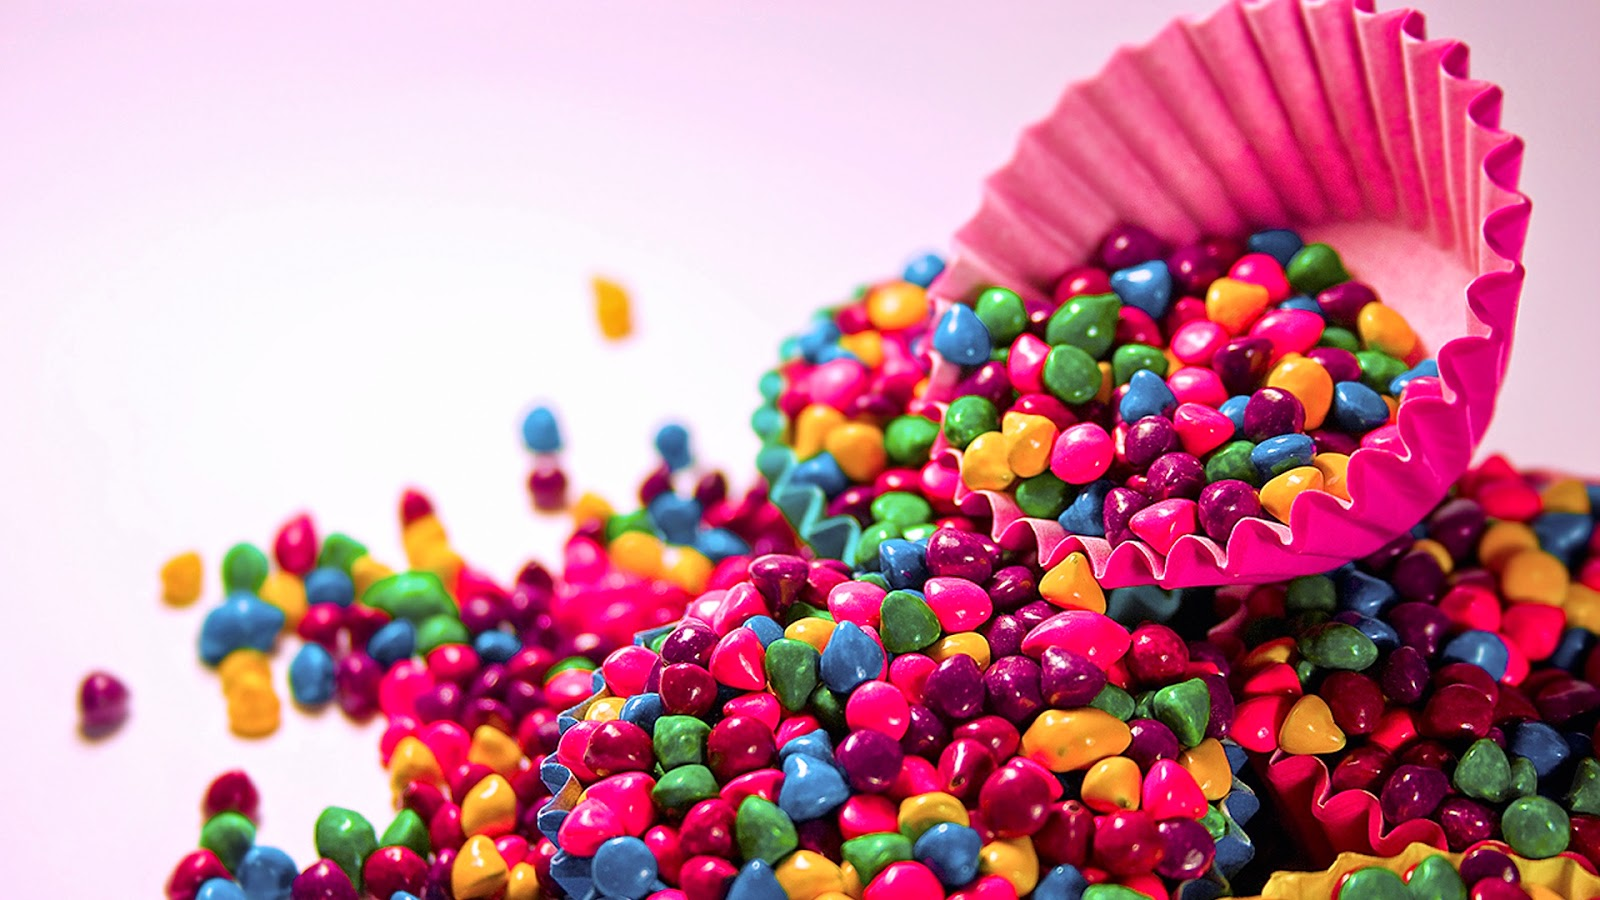 "<img src=""http://1.bp.blogspot.com/-p-9mJkVd5Ag/U7vLd3zybTI/AAAAAAAALRA/8-sU0Dkhh3w/s1600/colorful-candy-wallpaper.jpg"" alt=""Colorful Candy Wallpaper"" />"